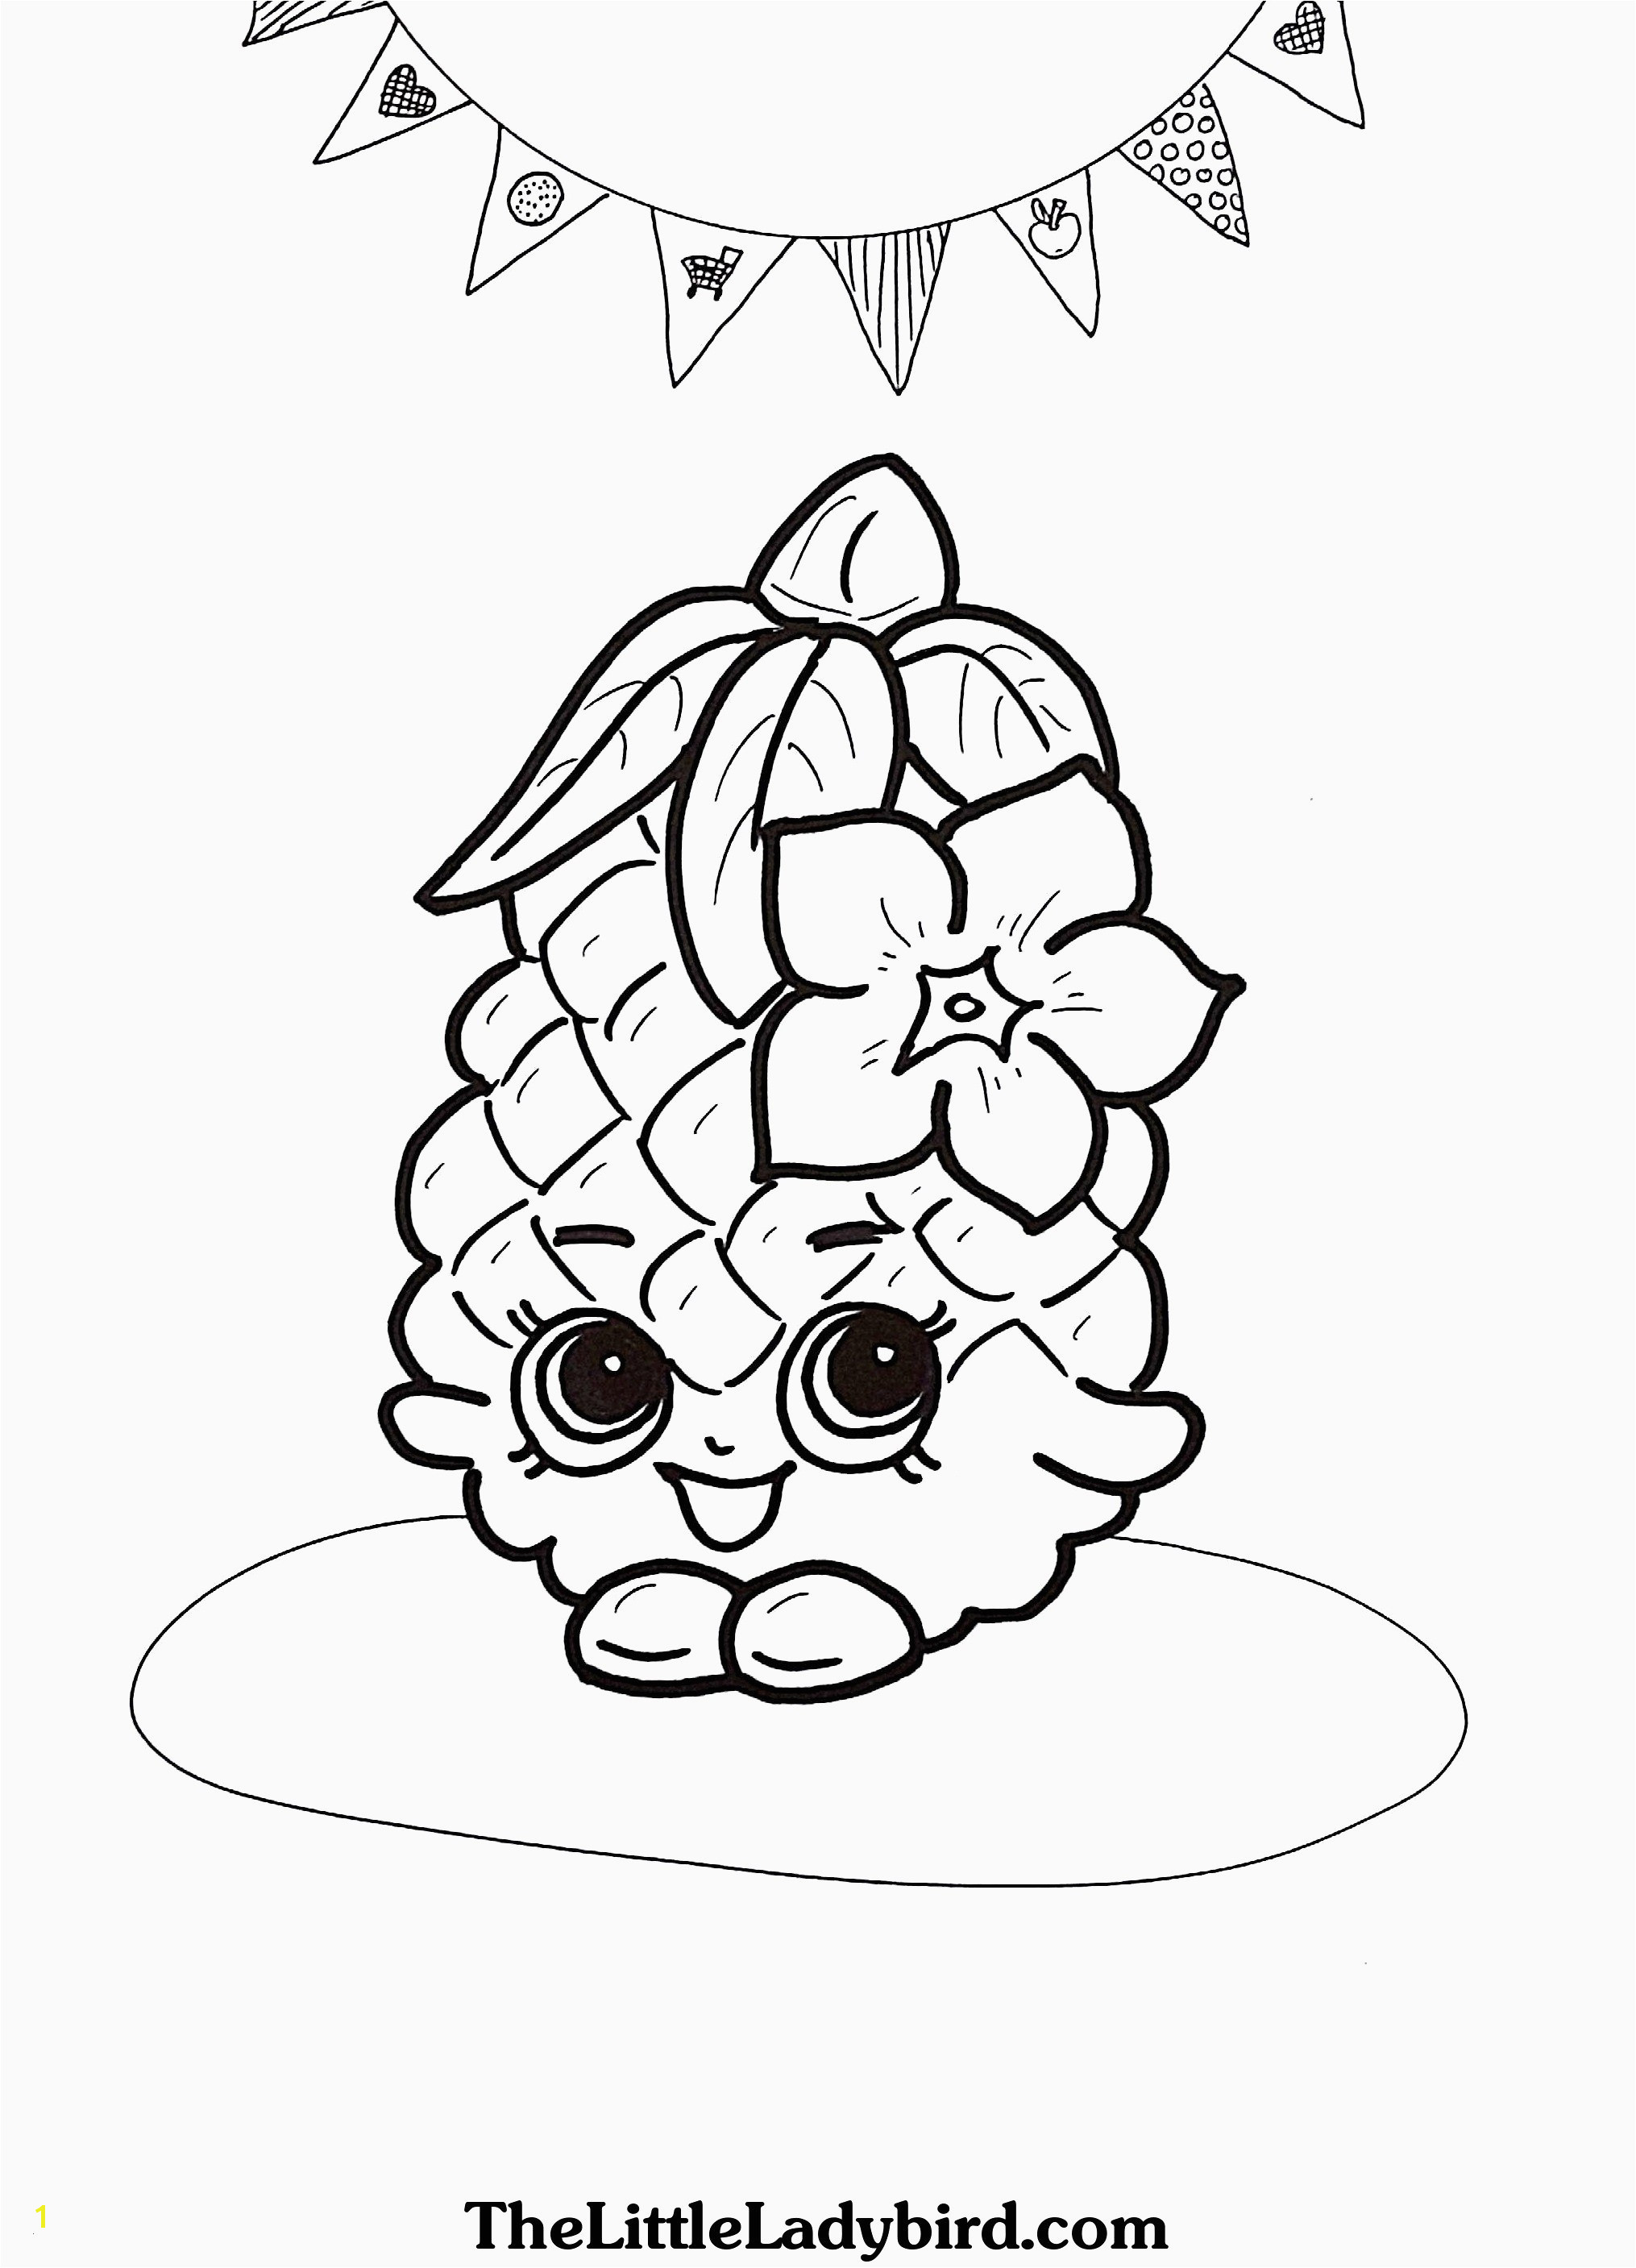 Spongebob Zeichnung Fesselnd Spongebob Squarepants Coloring Pages Luxury Cool Coloring Page